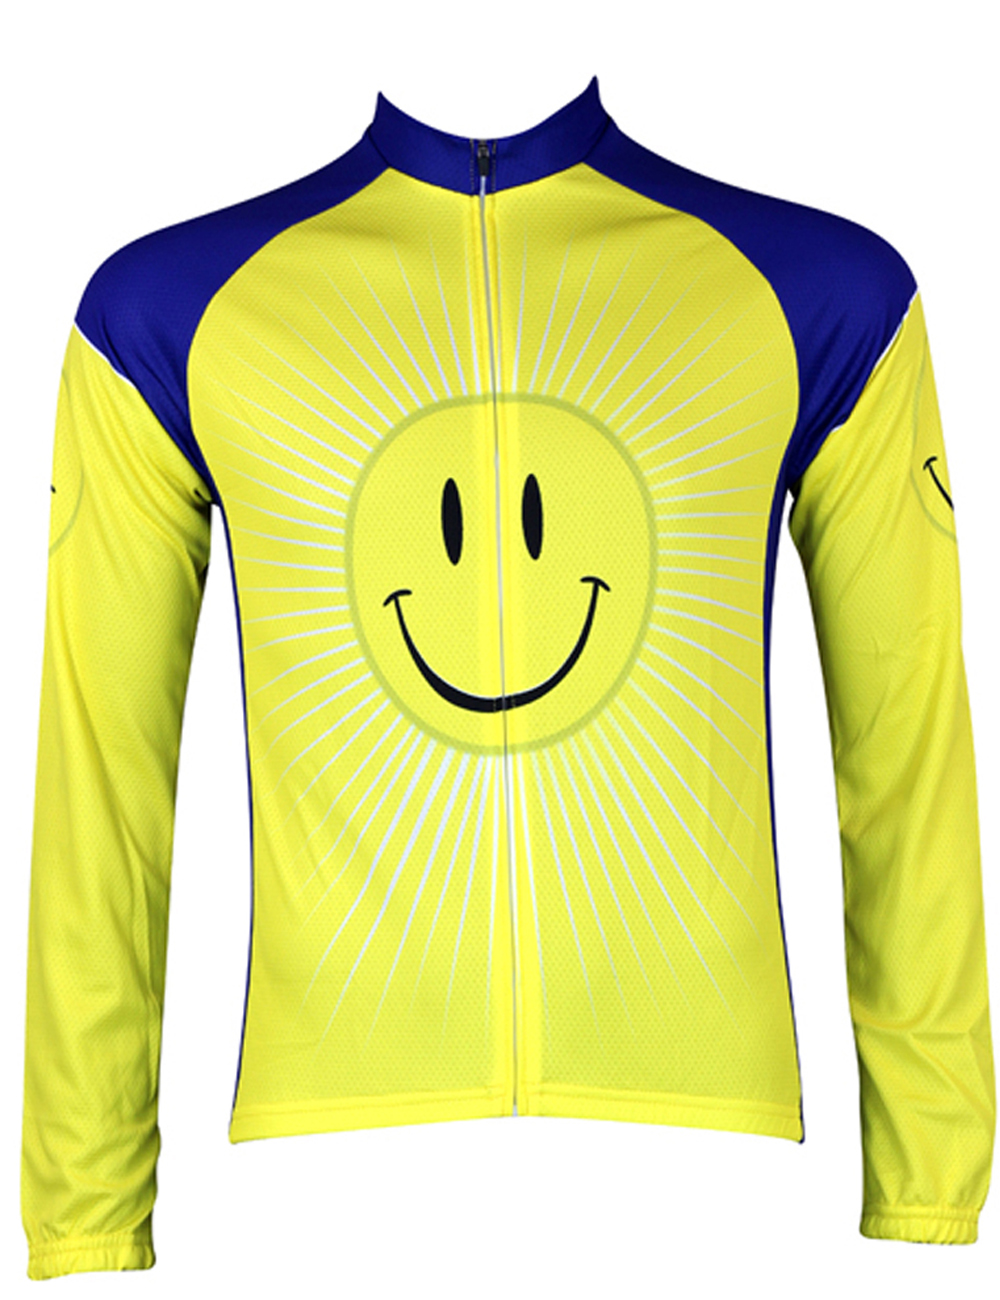 Smiley Alien SportsWear Mens Long Sleeve Cycling Jersey Cycling Clothing  Bike Shirt Size 2XS To 6XL 052584065